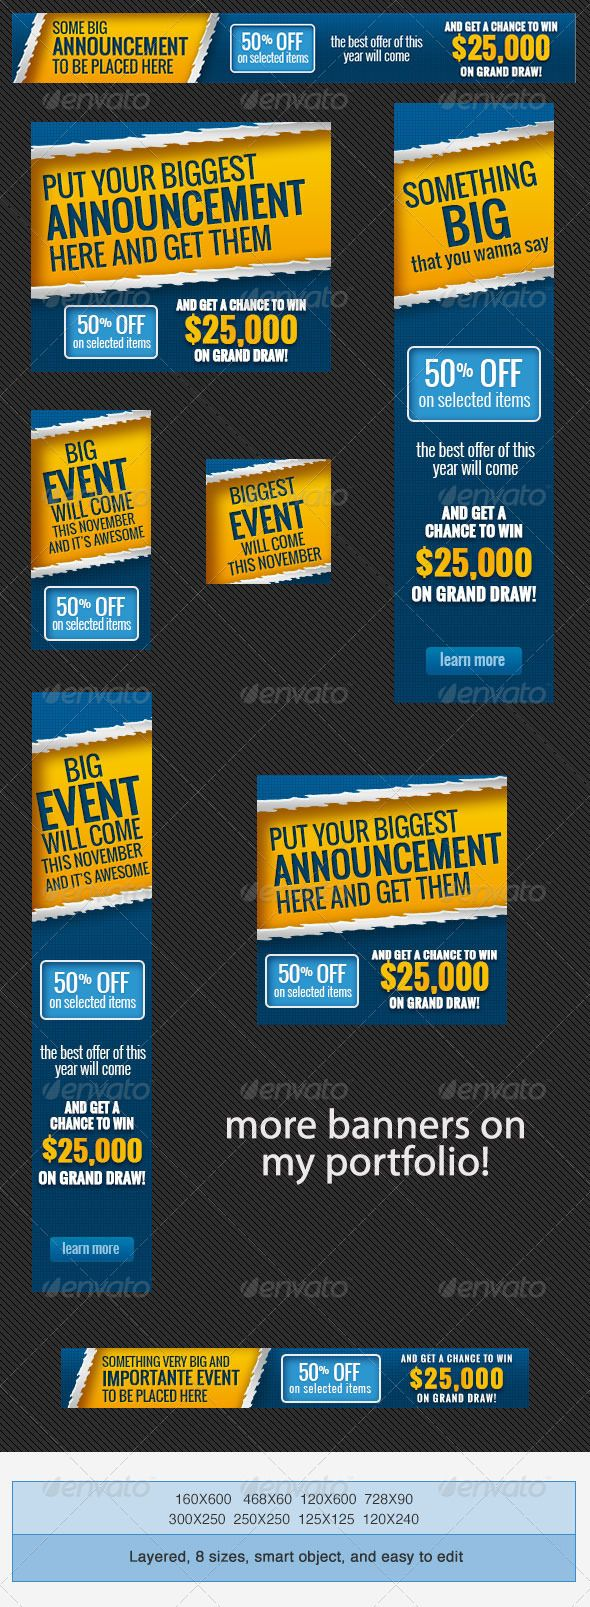 big event banner ads psd template advertising affiliate big event banner ads psd template psd here graphicriver